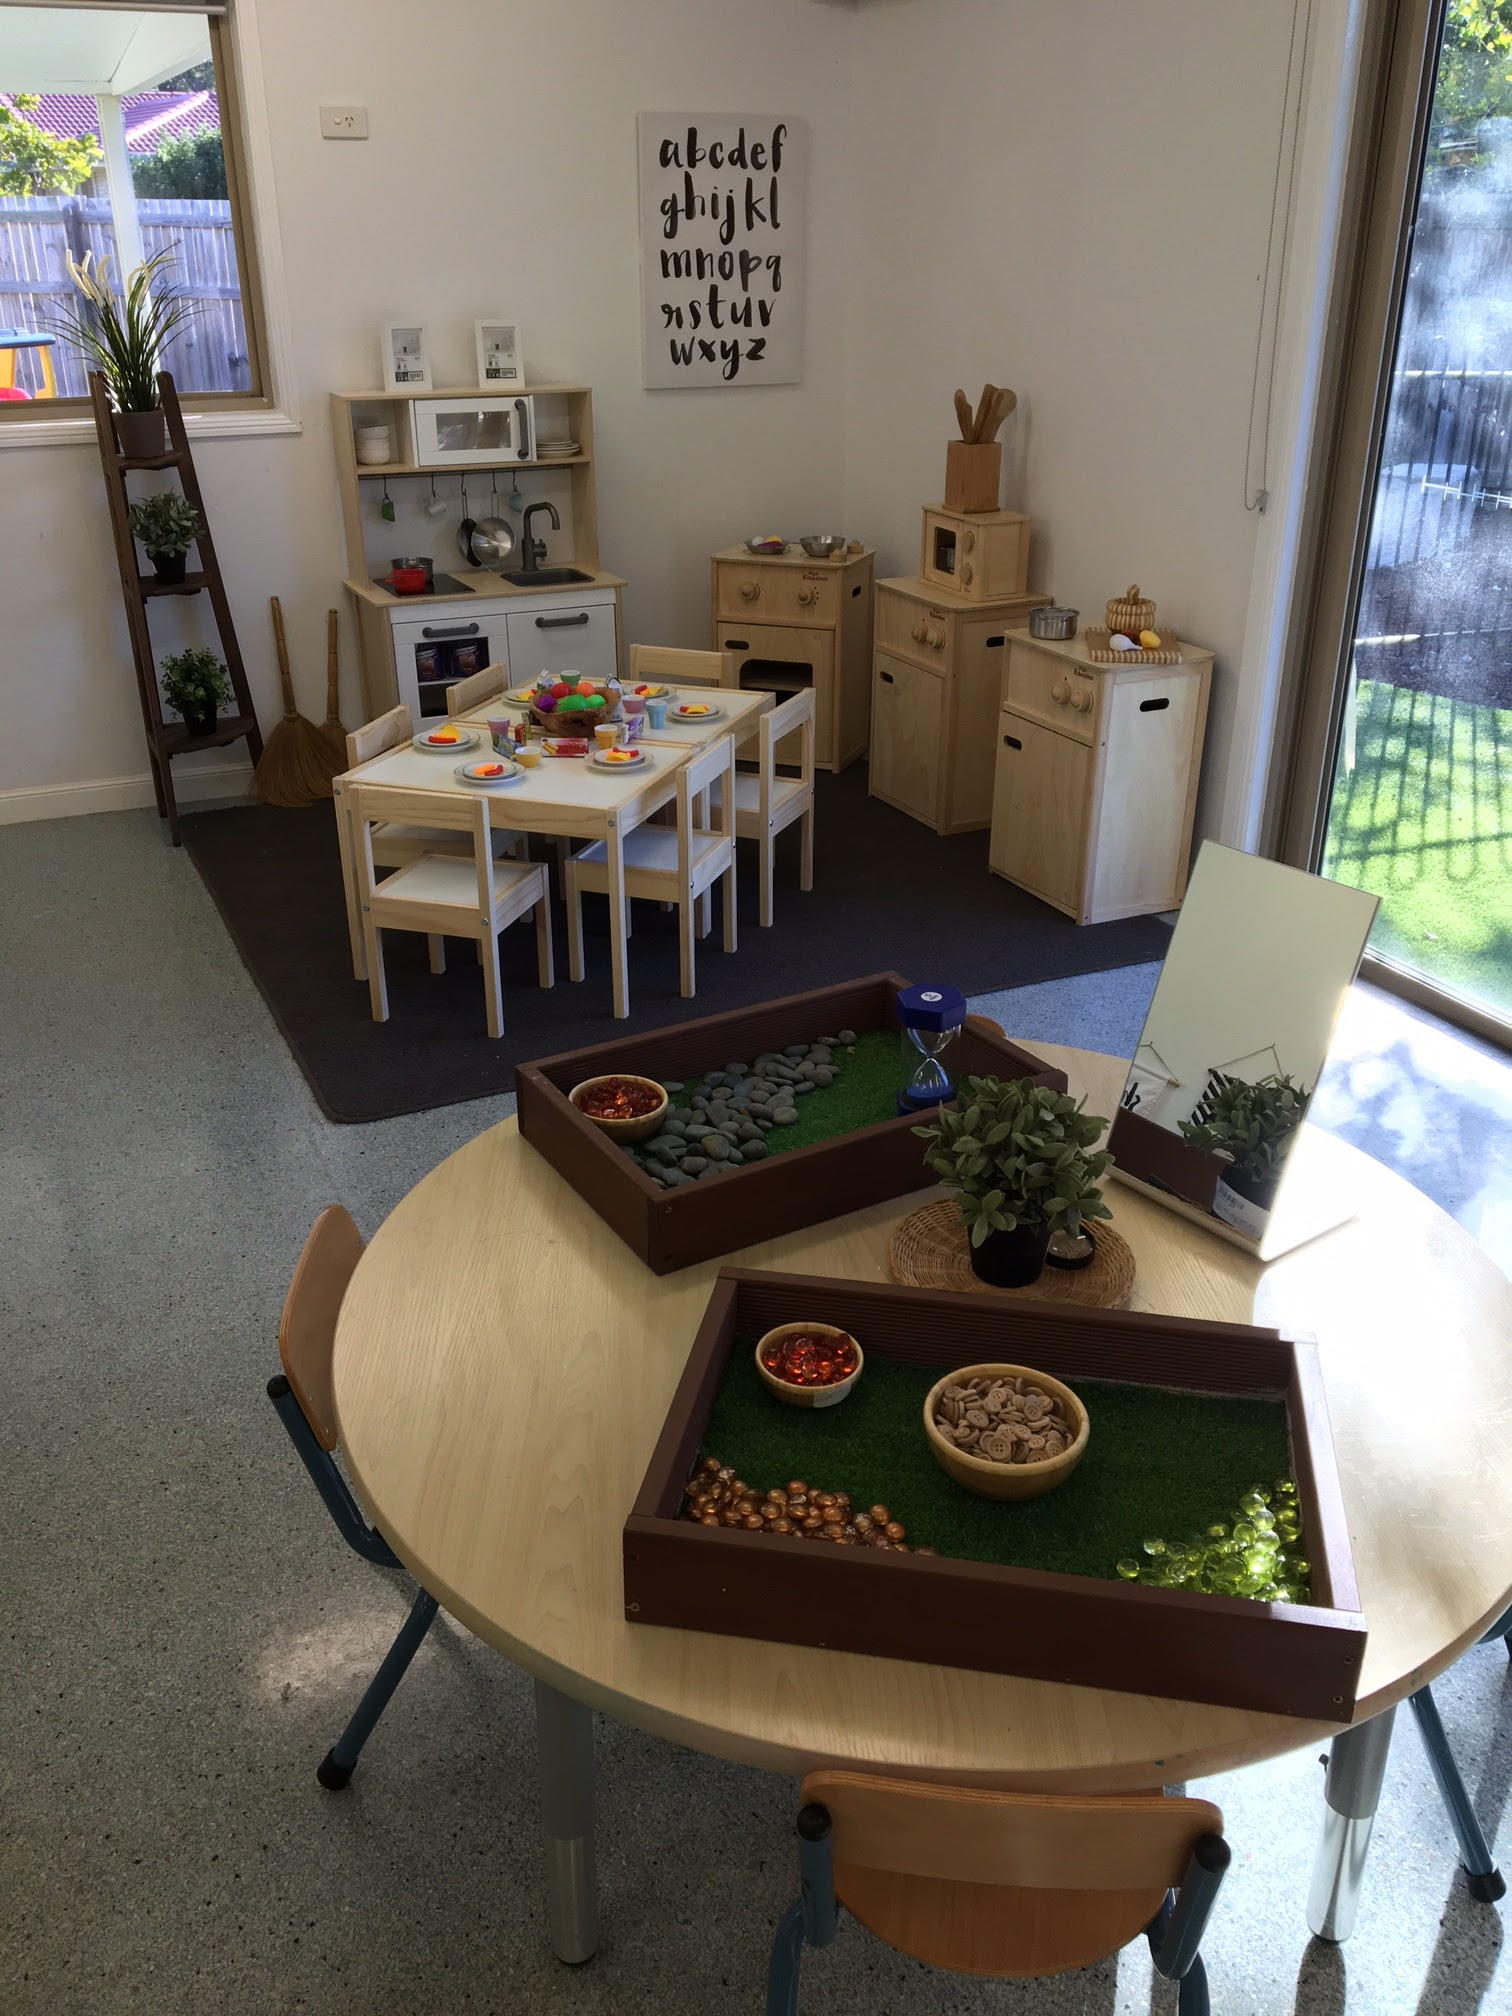 Little Scholars School Of Early Learning Redland Bay | Redland Bay, Queensland 4165 | +61 7 3829 2817